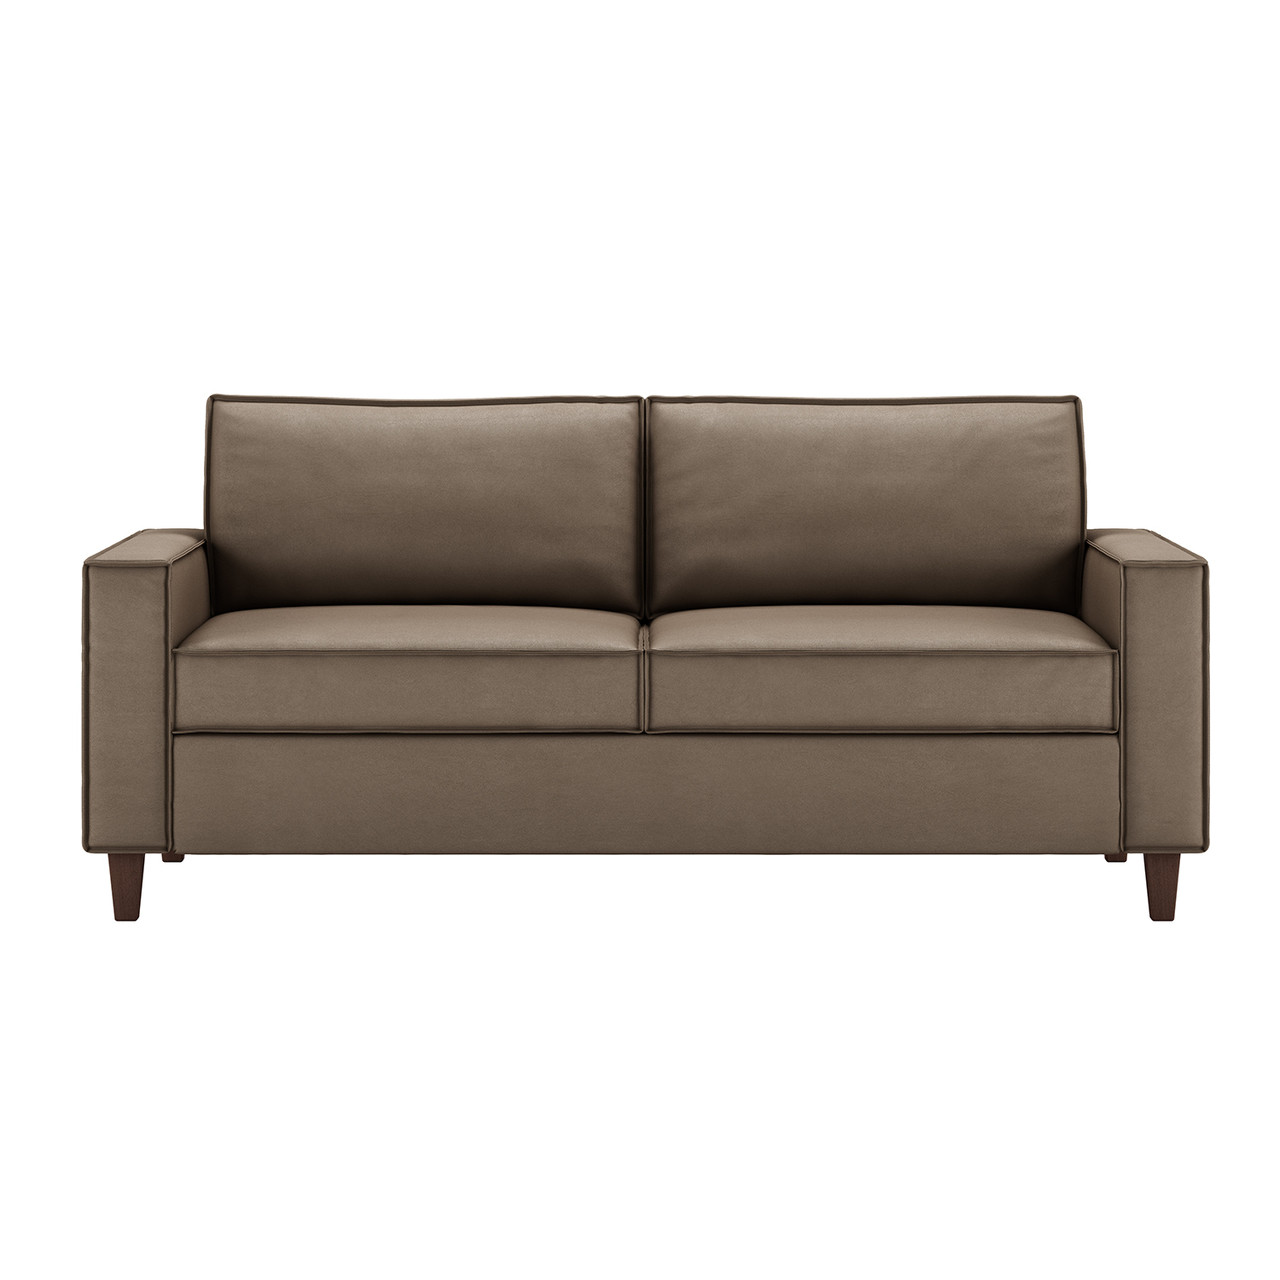 Queen Plus Comfort Sleeper® in Dolce Chocolate Leather with Walnut Finish Legs